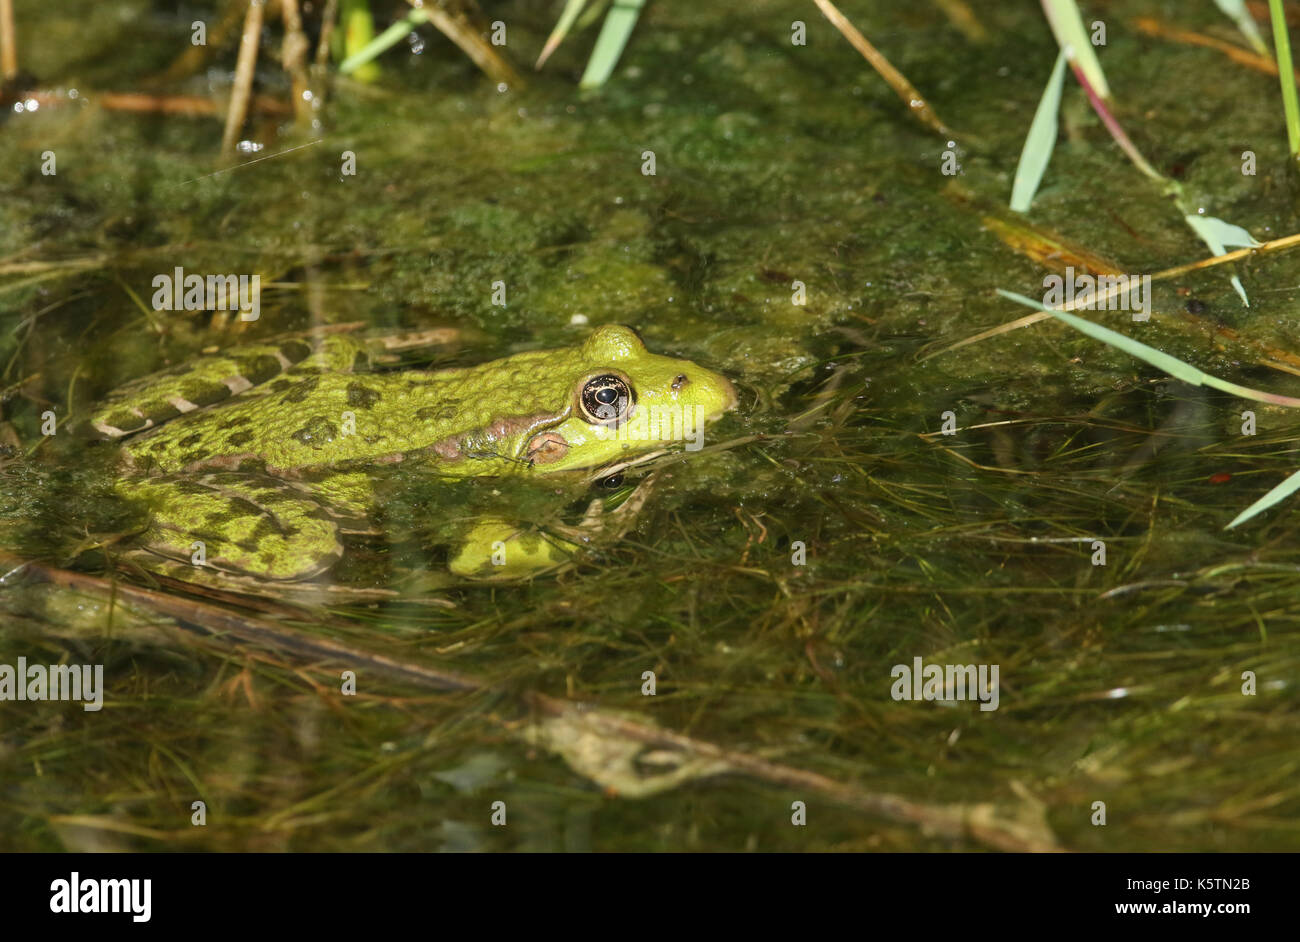 A Marsh Frog (Pelophylax (formerly Rana) ridibunda) sitting in a stream partly submerged in the water. Stock Photo